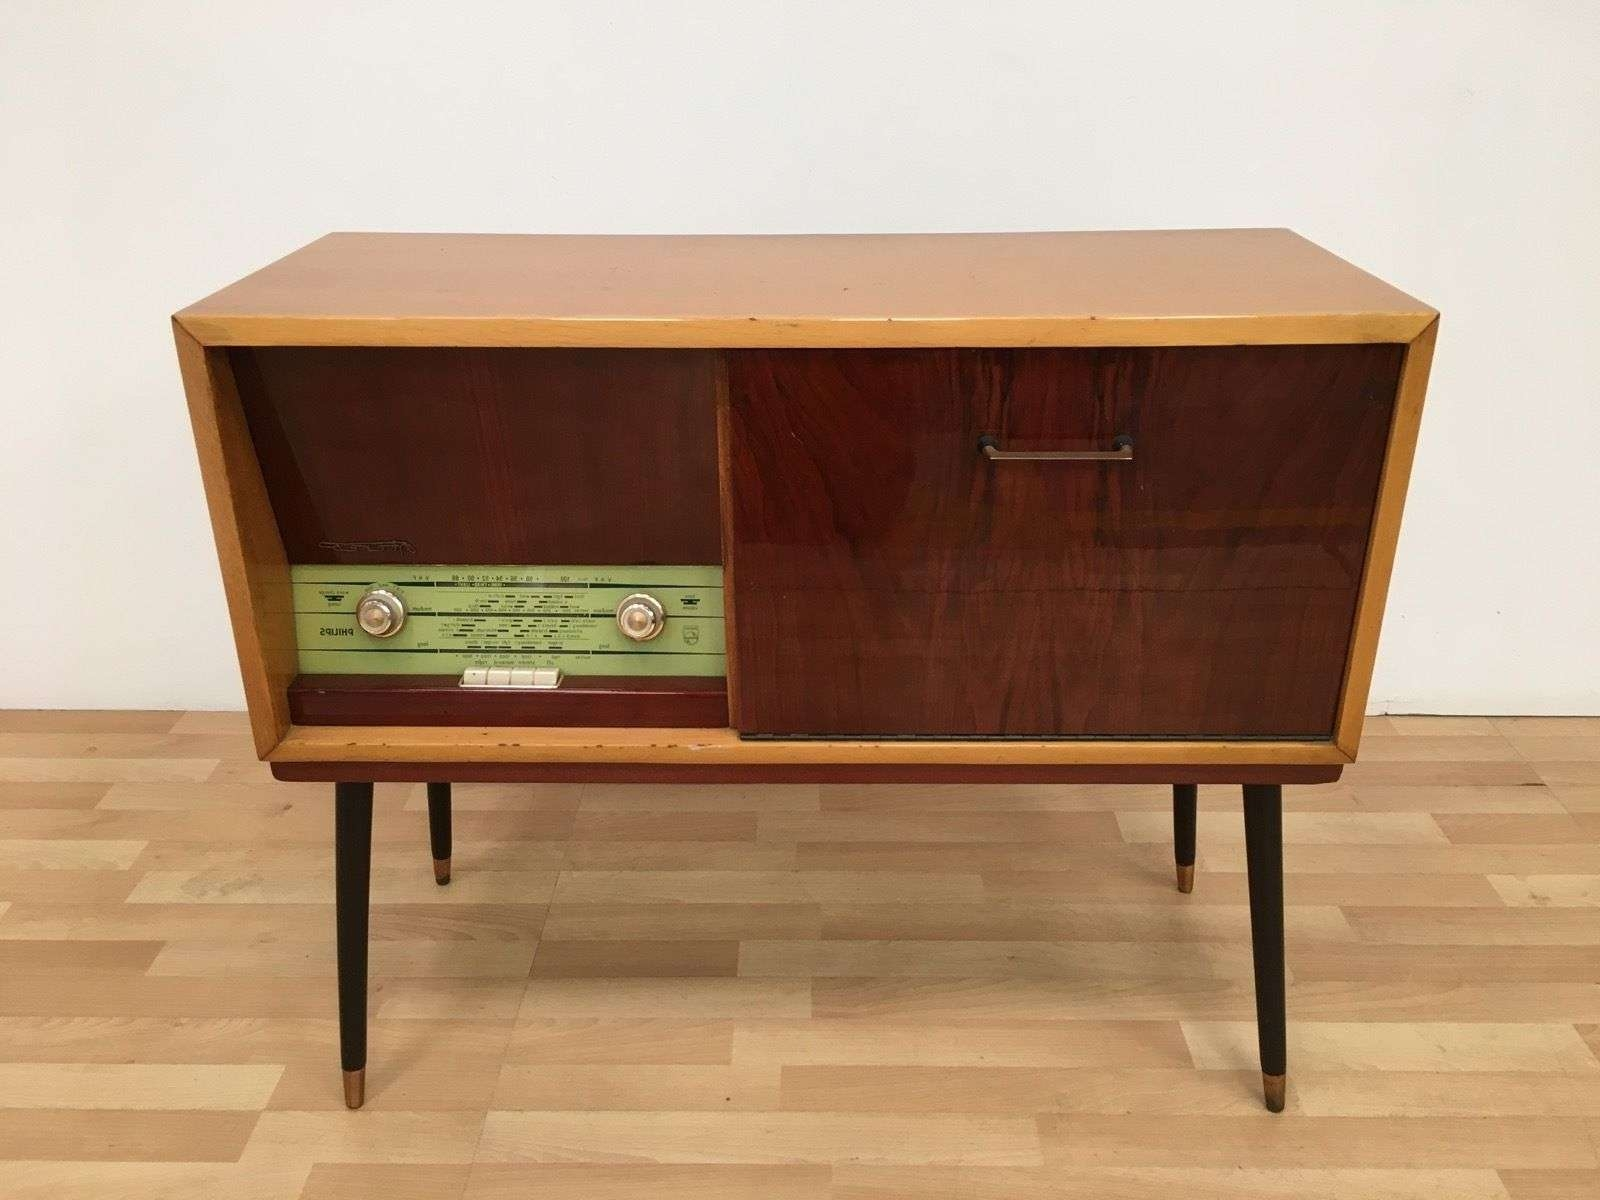 Vintage Retro Mid Century 50s 60s Philips Stereo Radiogram With Regard To 50s Sideboards (View 3 of 20)